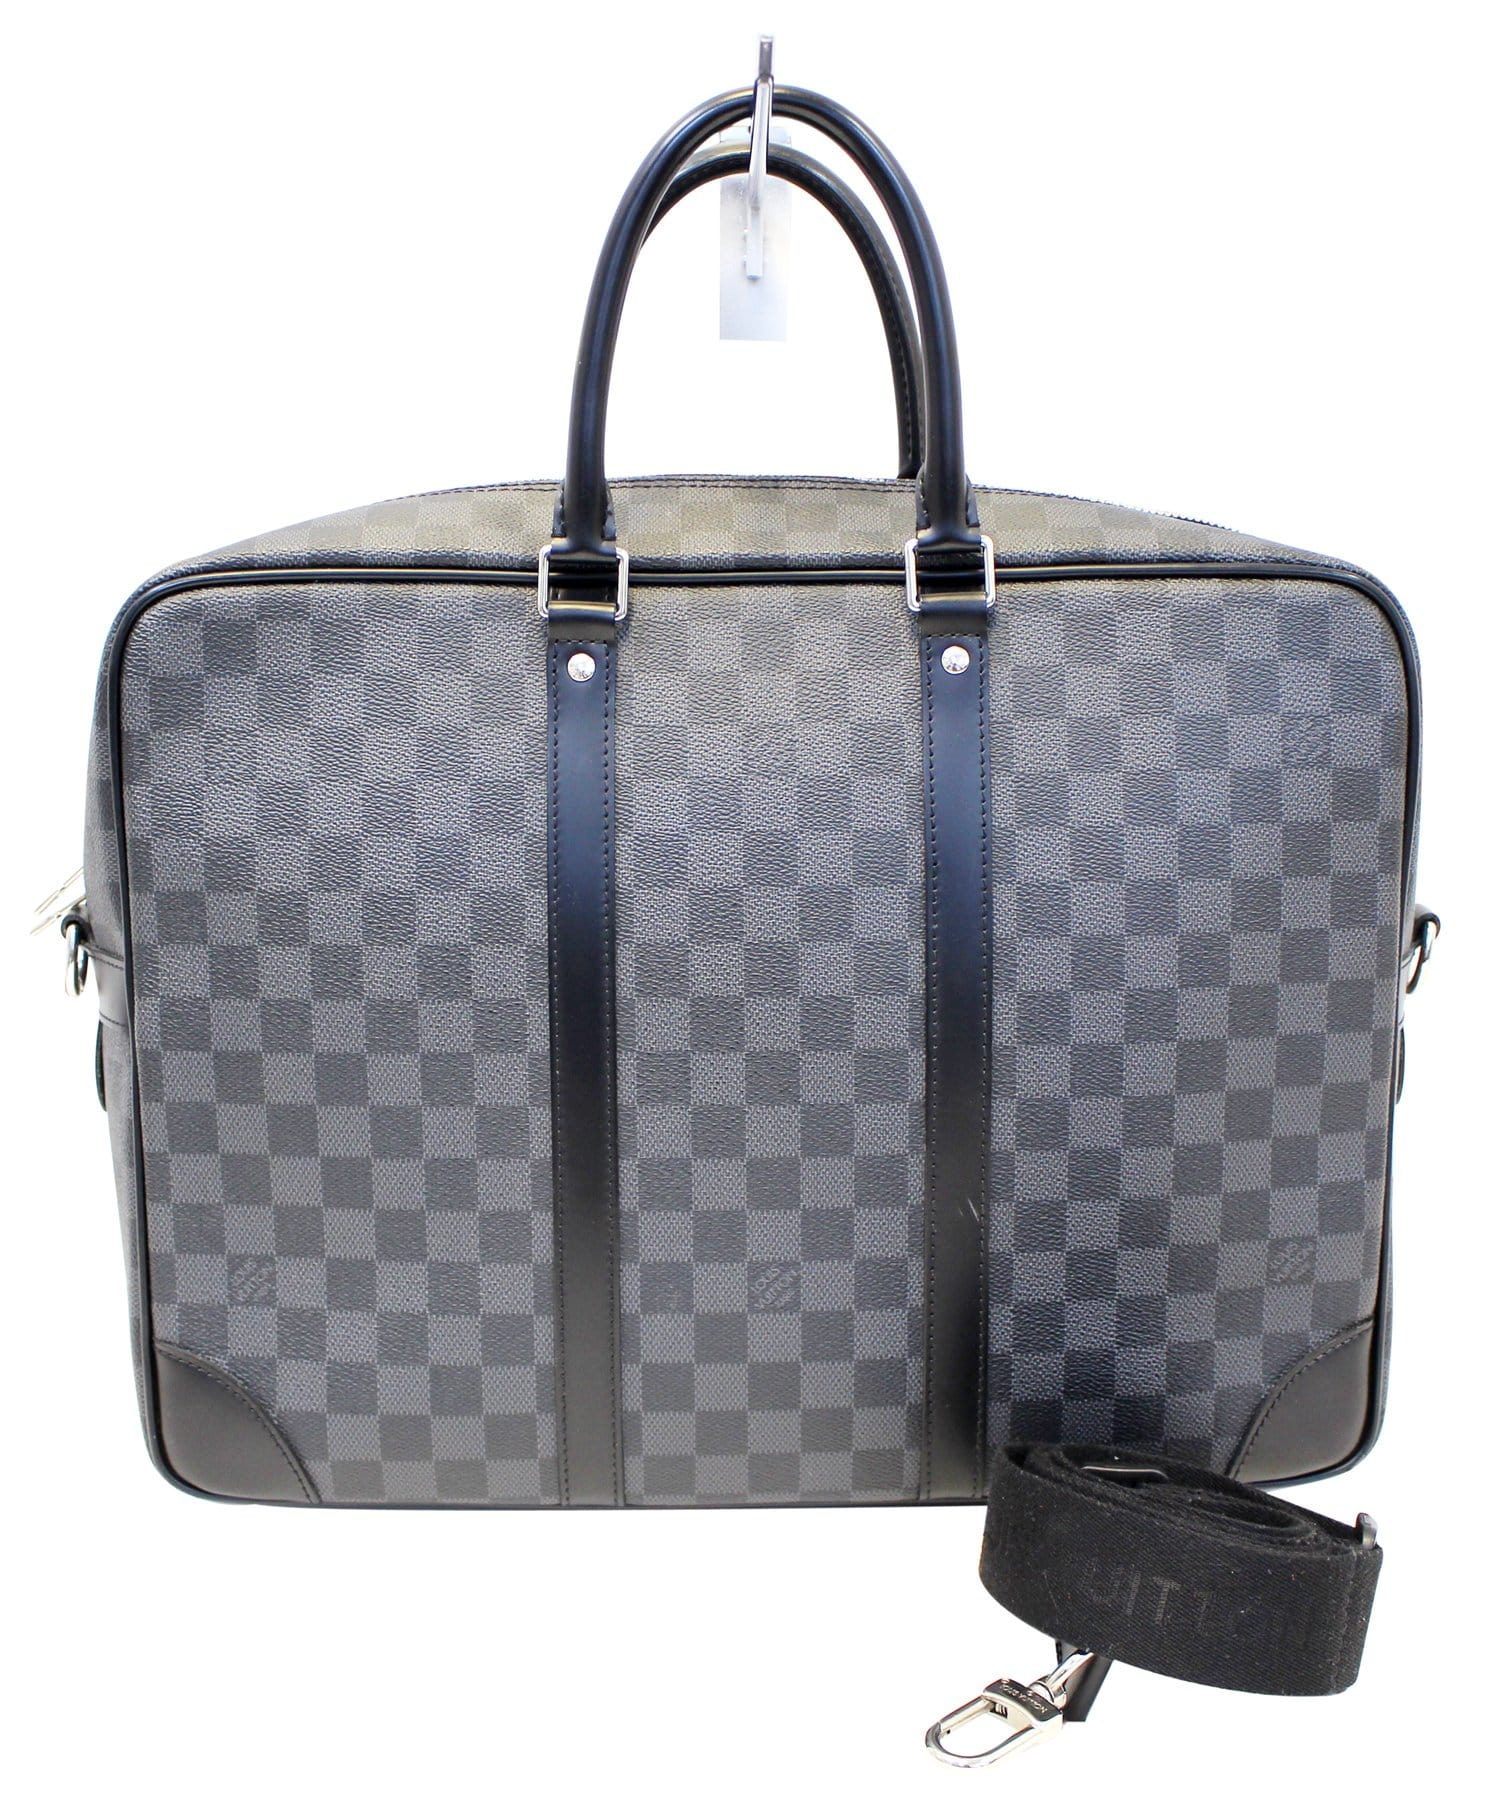 ddc5a918de05 LOUIS VUITTON Damier Graphite Porte-Documents Voyage GM Briefcase Bag E4090